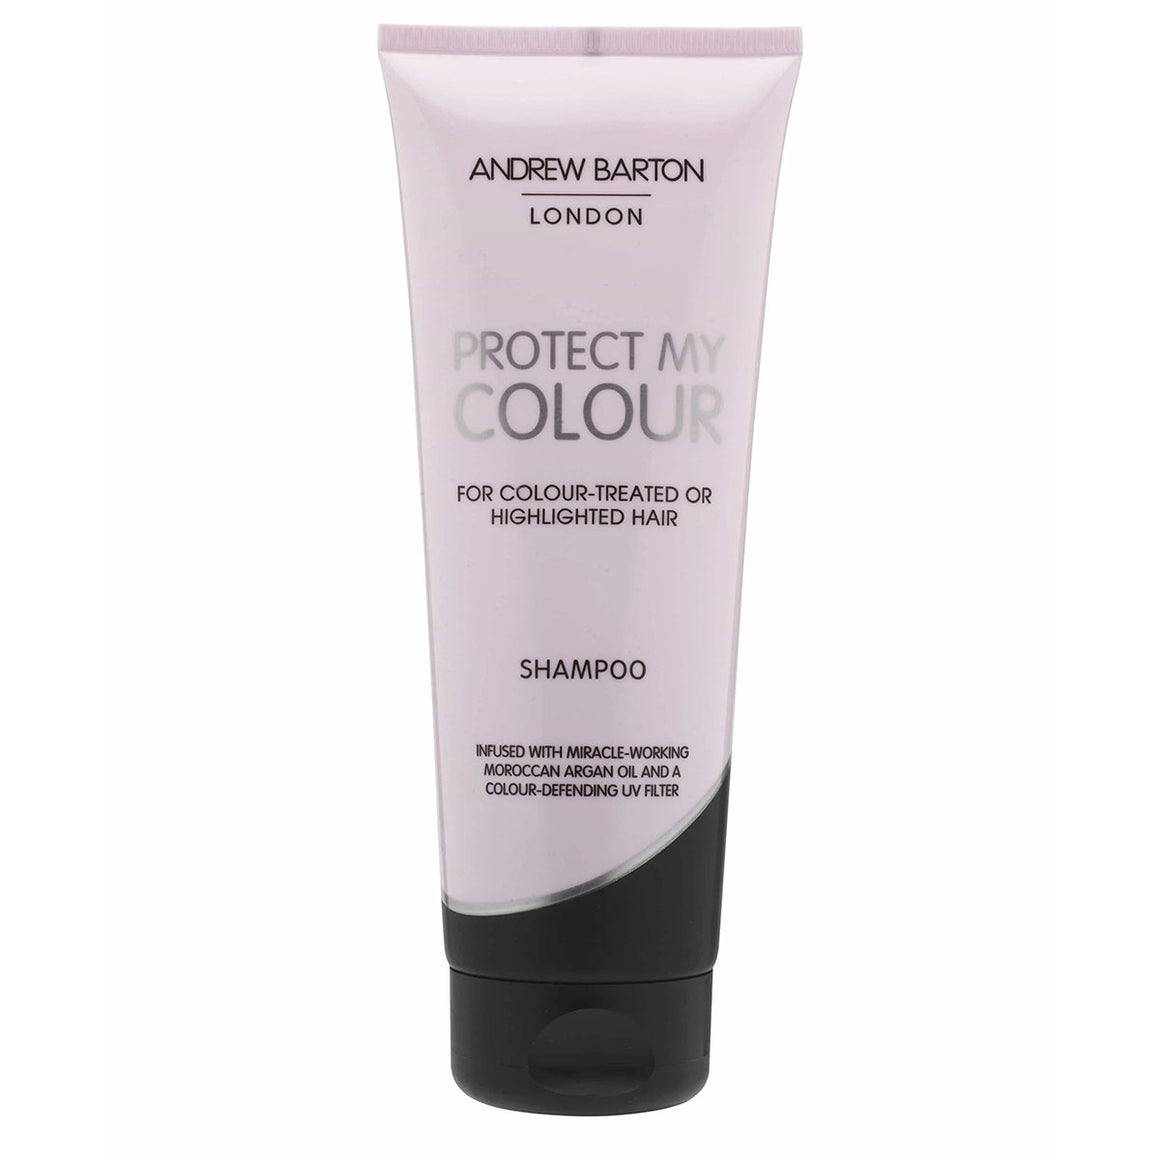 Andrew Barton Protect My Colour Shampoo-250ml at BD Budget Beauty (BBB)